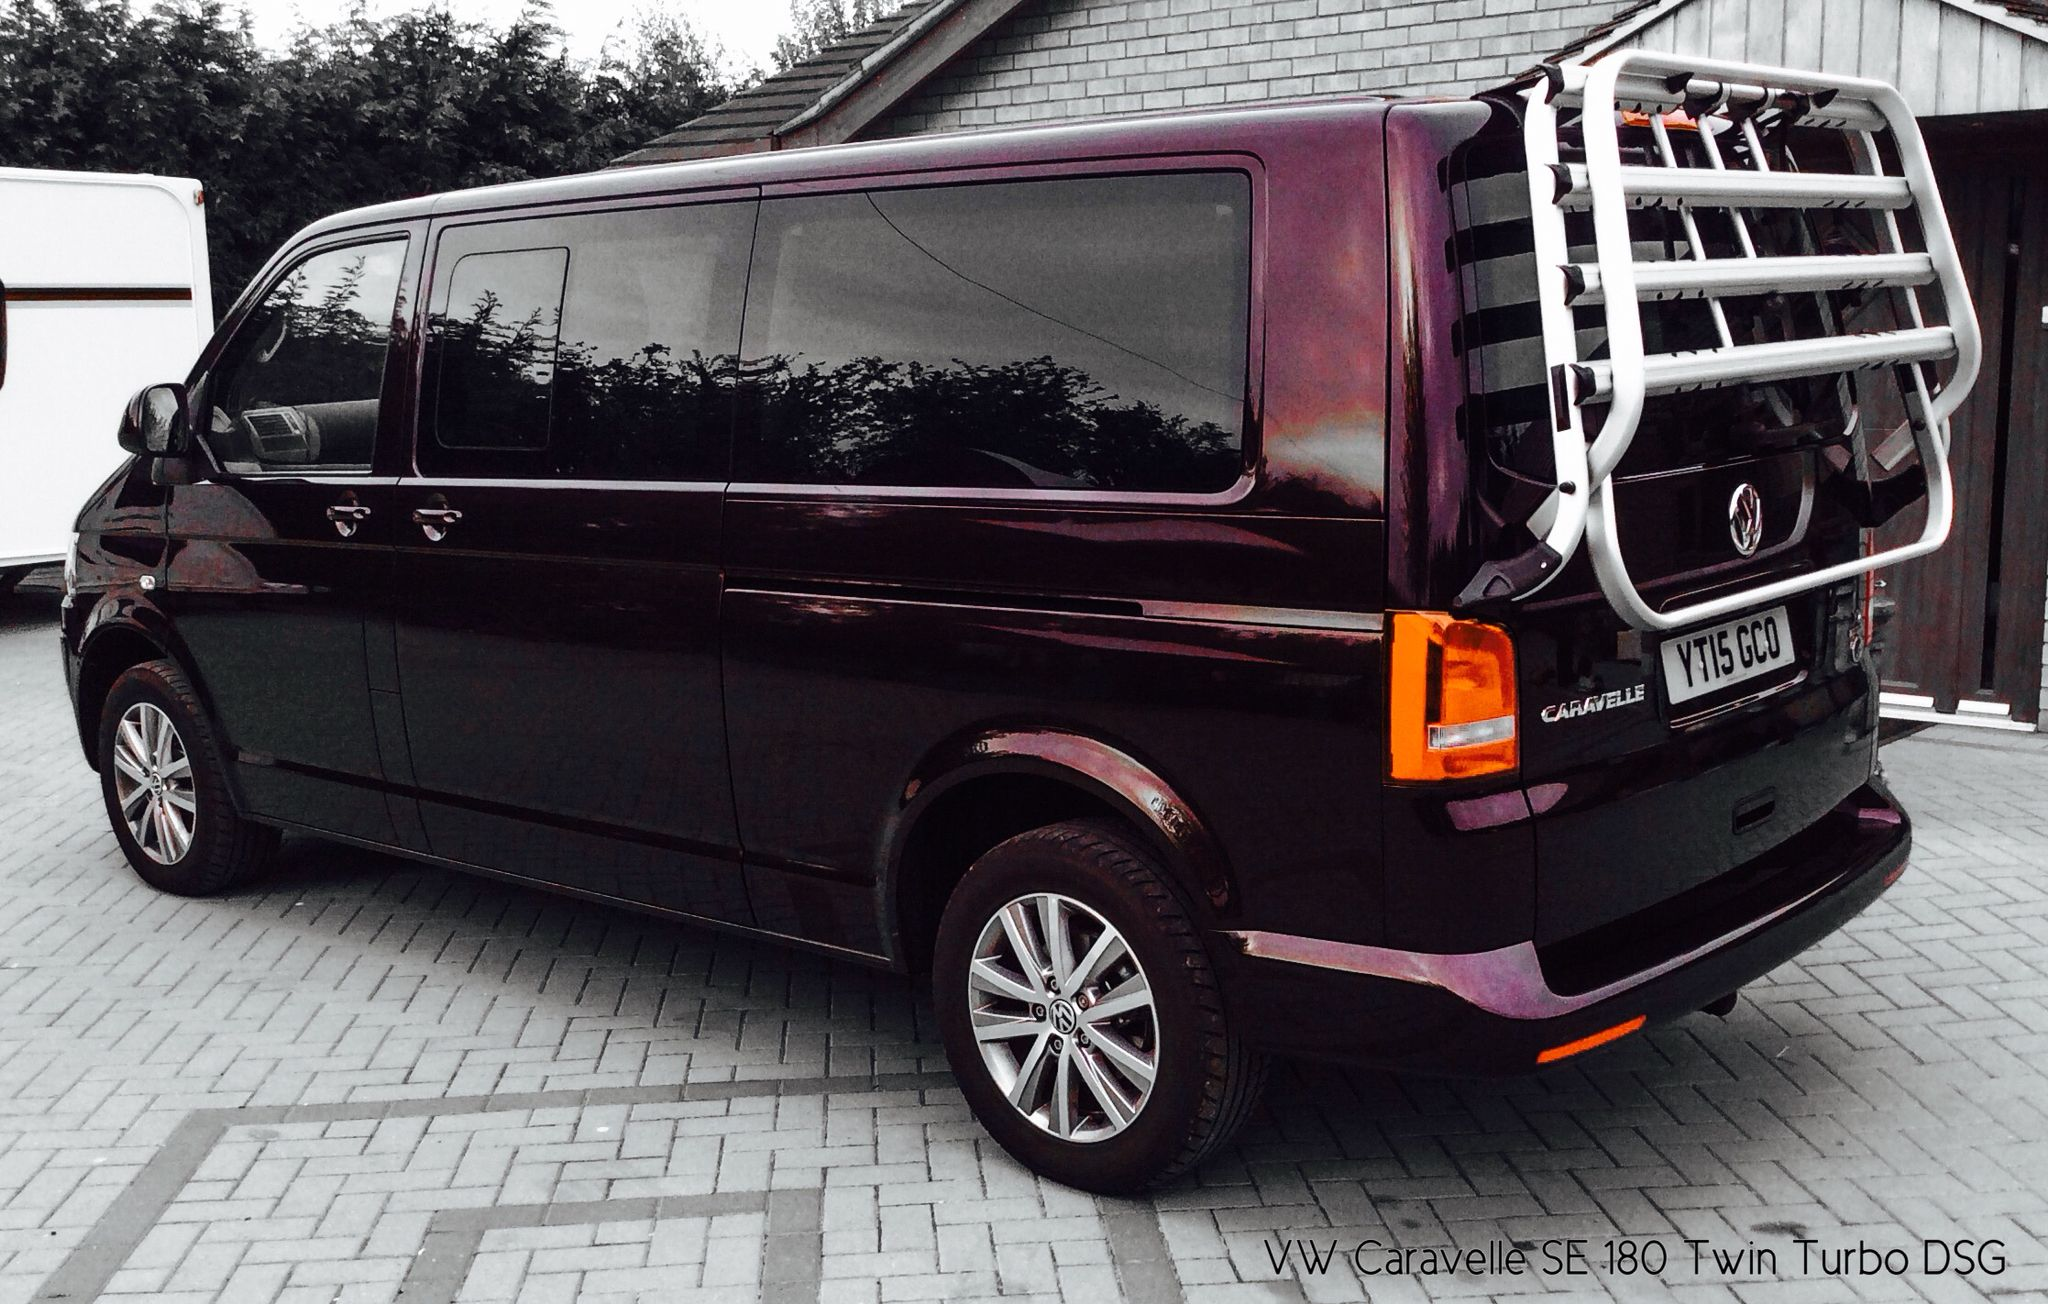 my 2015 vw caravelle longwheelbase 180 7 speed dsg in blackberry with california bike rack. Black Bedroom Furniture Sets. Home Design Ideas